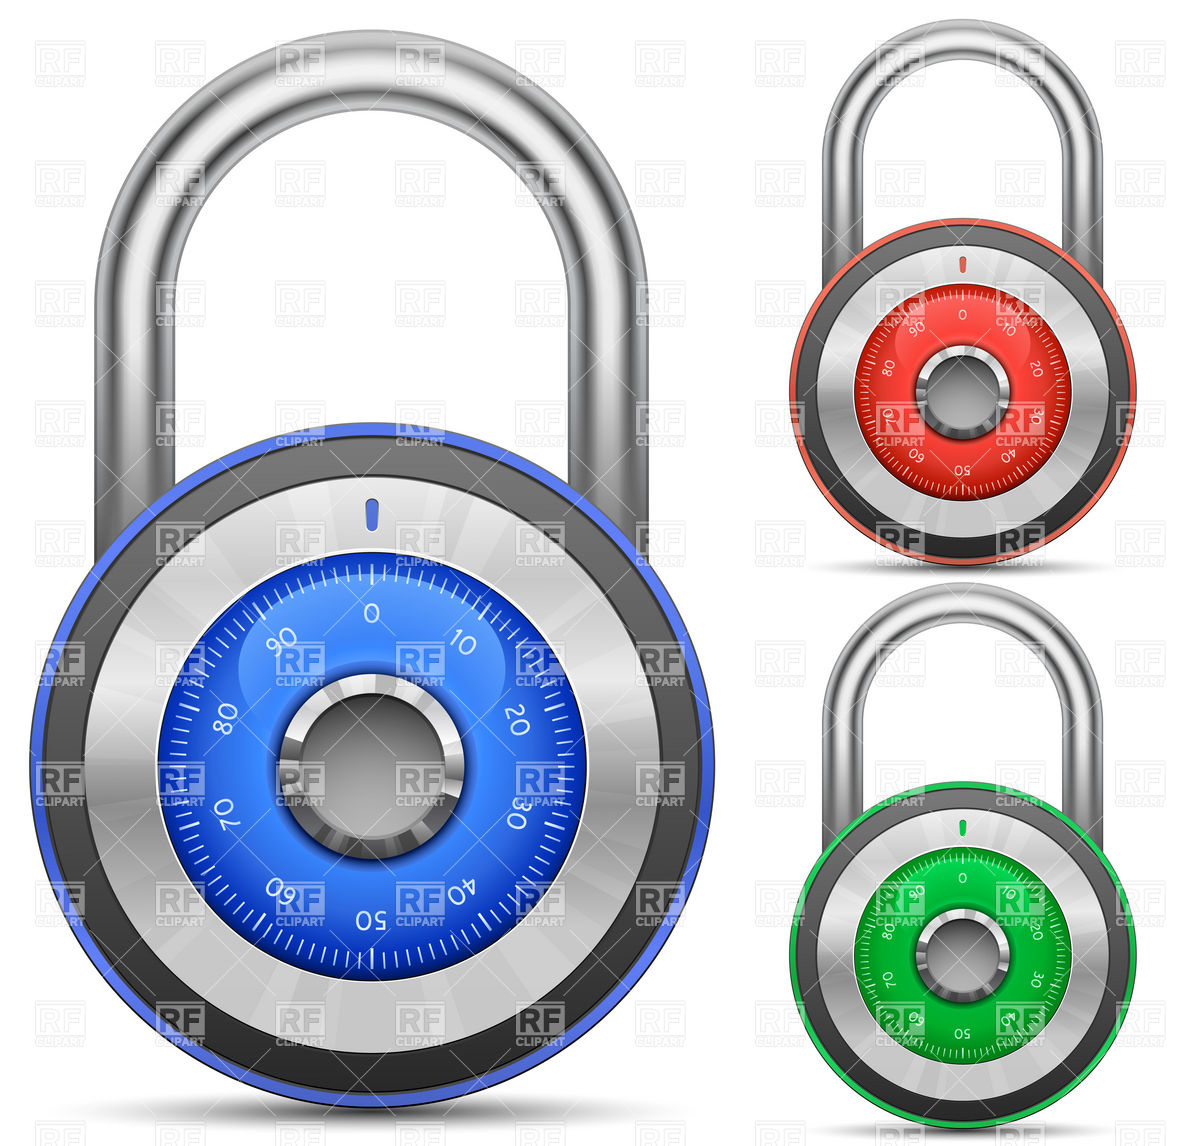 Lock   Security Concept Download Royalty Free Vector Clipart  Eps